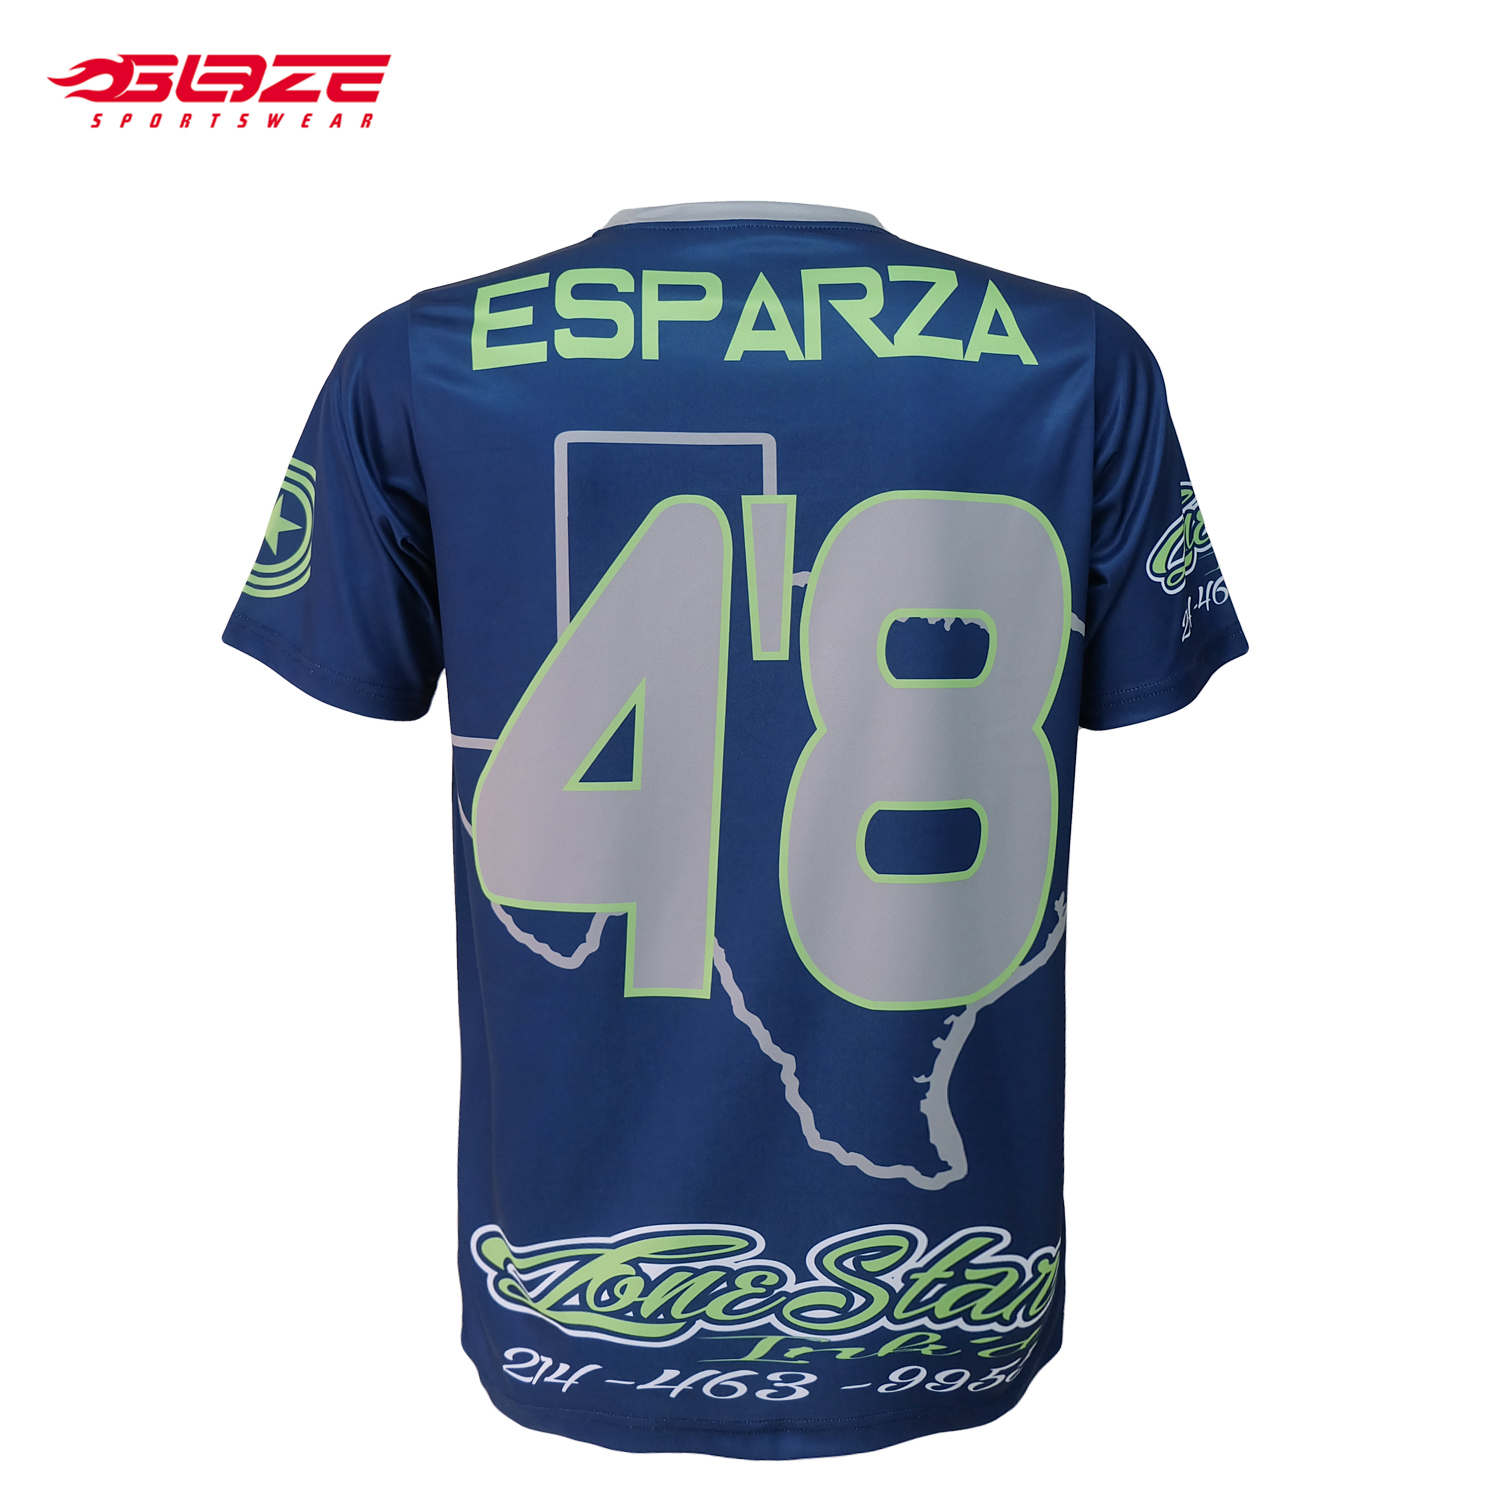 online retailer 82472 6fc44 Custom Polyester Sublimation Personalized Unisex Slow Pitch Softball  Jerseys - Buy Jersey Woman Sublimation Cheap Wholesale Women Full Dye 100%  ...